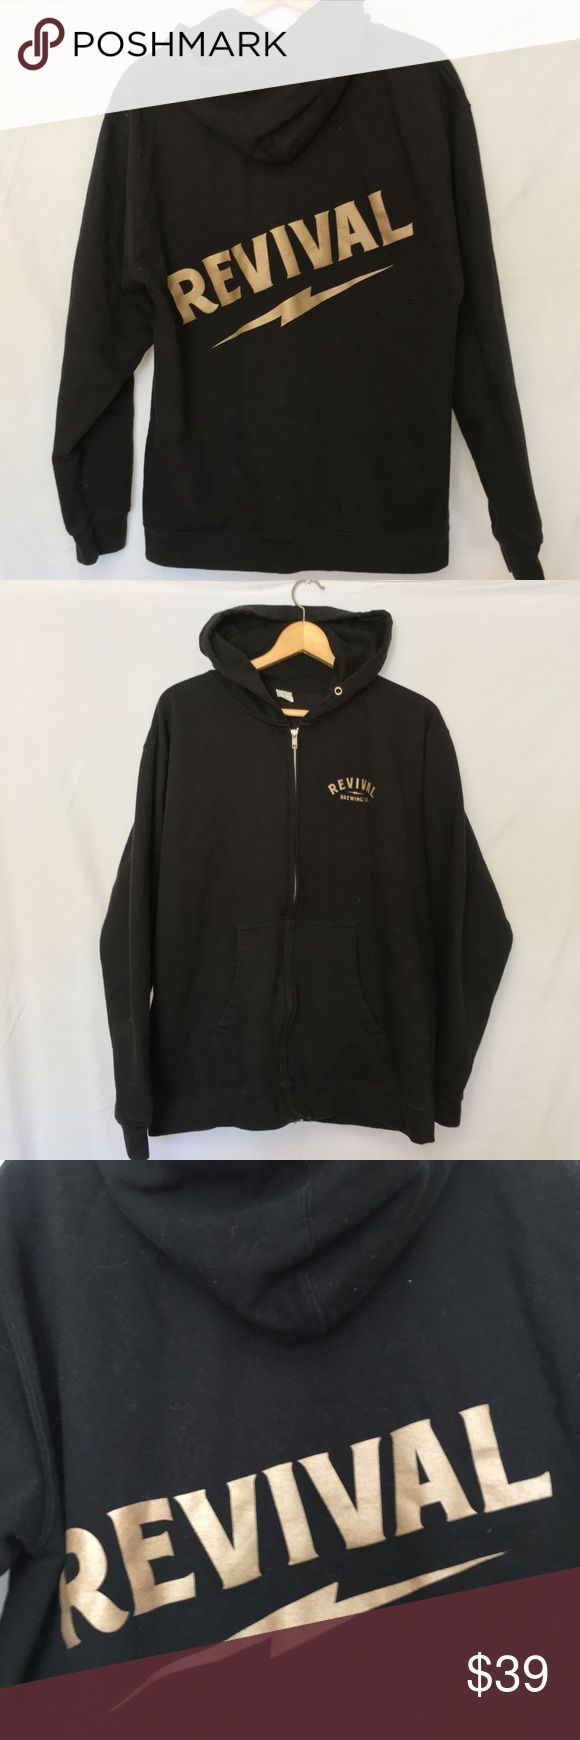 """Revival Brewing Co Beer Rhode Island Zip Hoodie Revival Brewing Co Beer Rhode Island Black Zip Sweatshirt Hoodie Mens Large Purchased at Brewtopia  80% Cotton & 20% Polyester Graphics are in a bronze metallic.  LENGTH 27"""" SLEEVES 27"""" UNDERARM TO UNDERARM 23"""" Good condition- missing pull string for hood and some very light wash wear.   Quick shipping! WE SHIP EITHER THE SAME BUSINESS DAY OR NEXT. ORDERS ON WEEKENDS ARE IN MAIL BY MONDAY MORNING. Shirts Sweatshirts & Hoodies"""